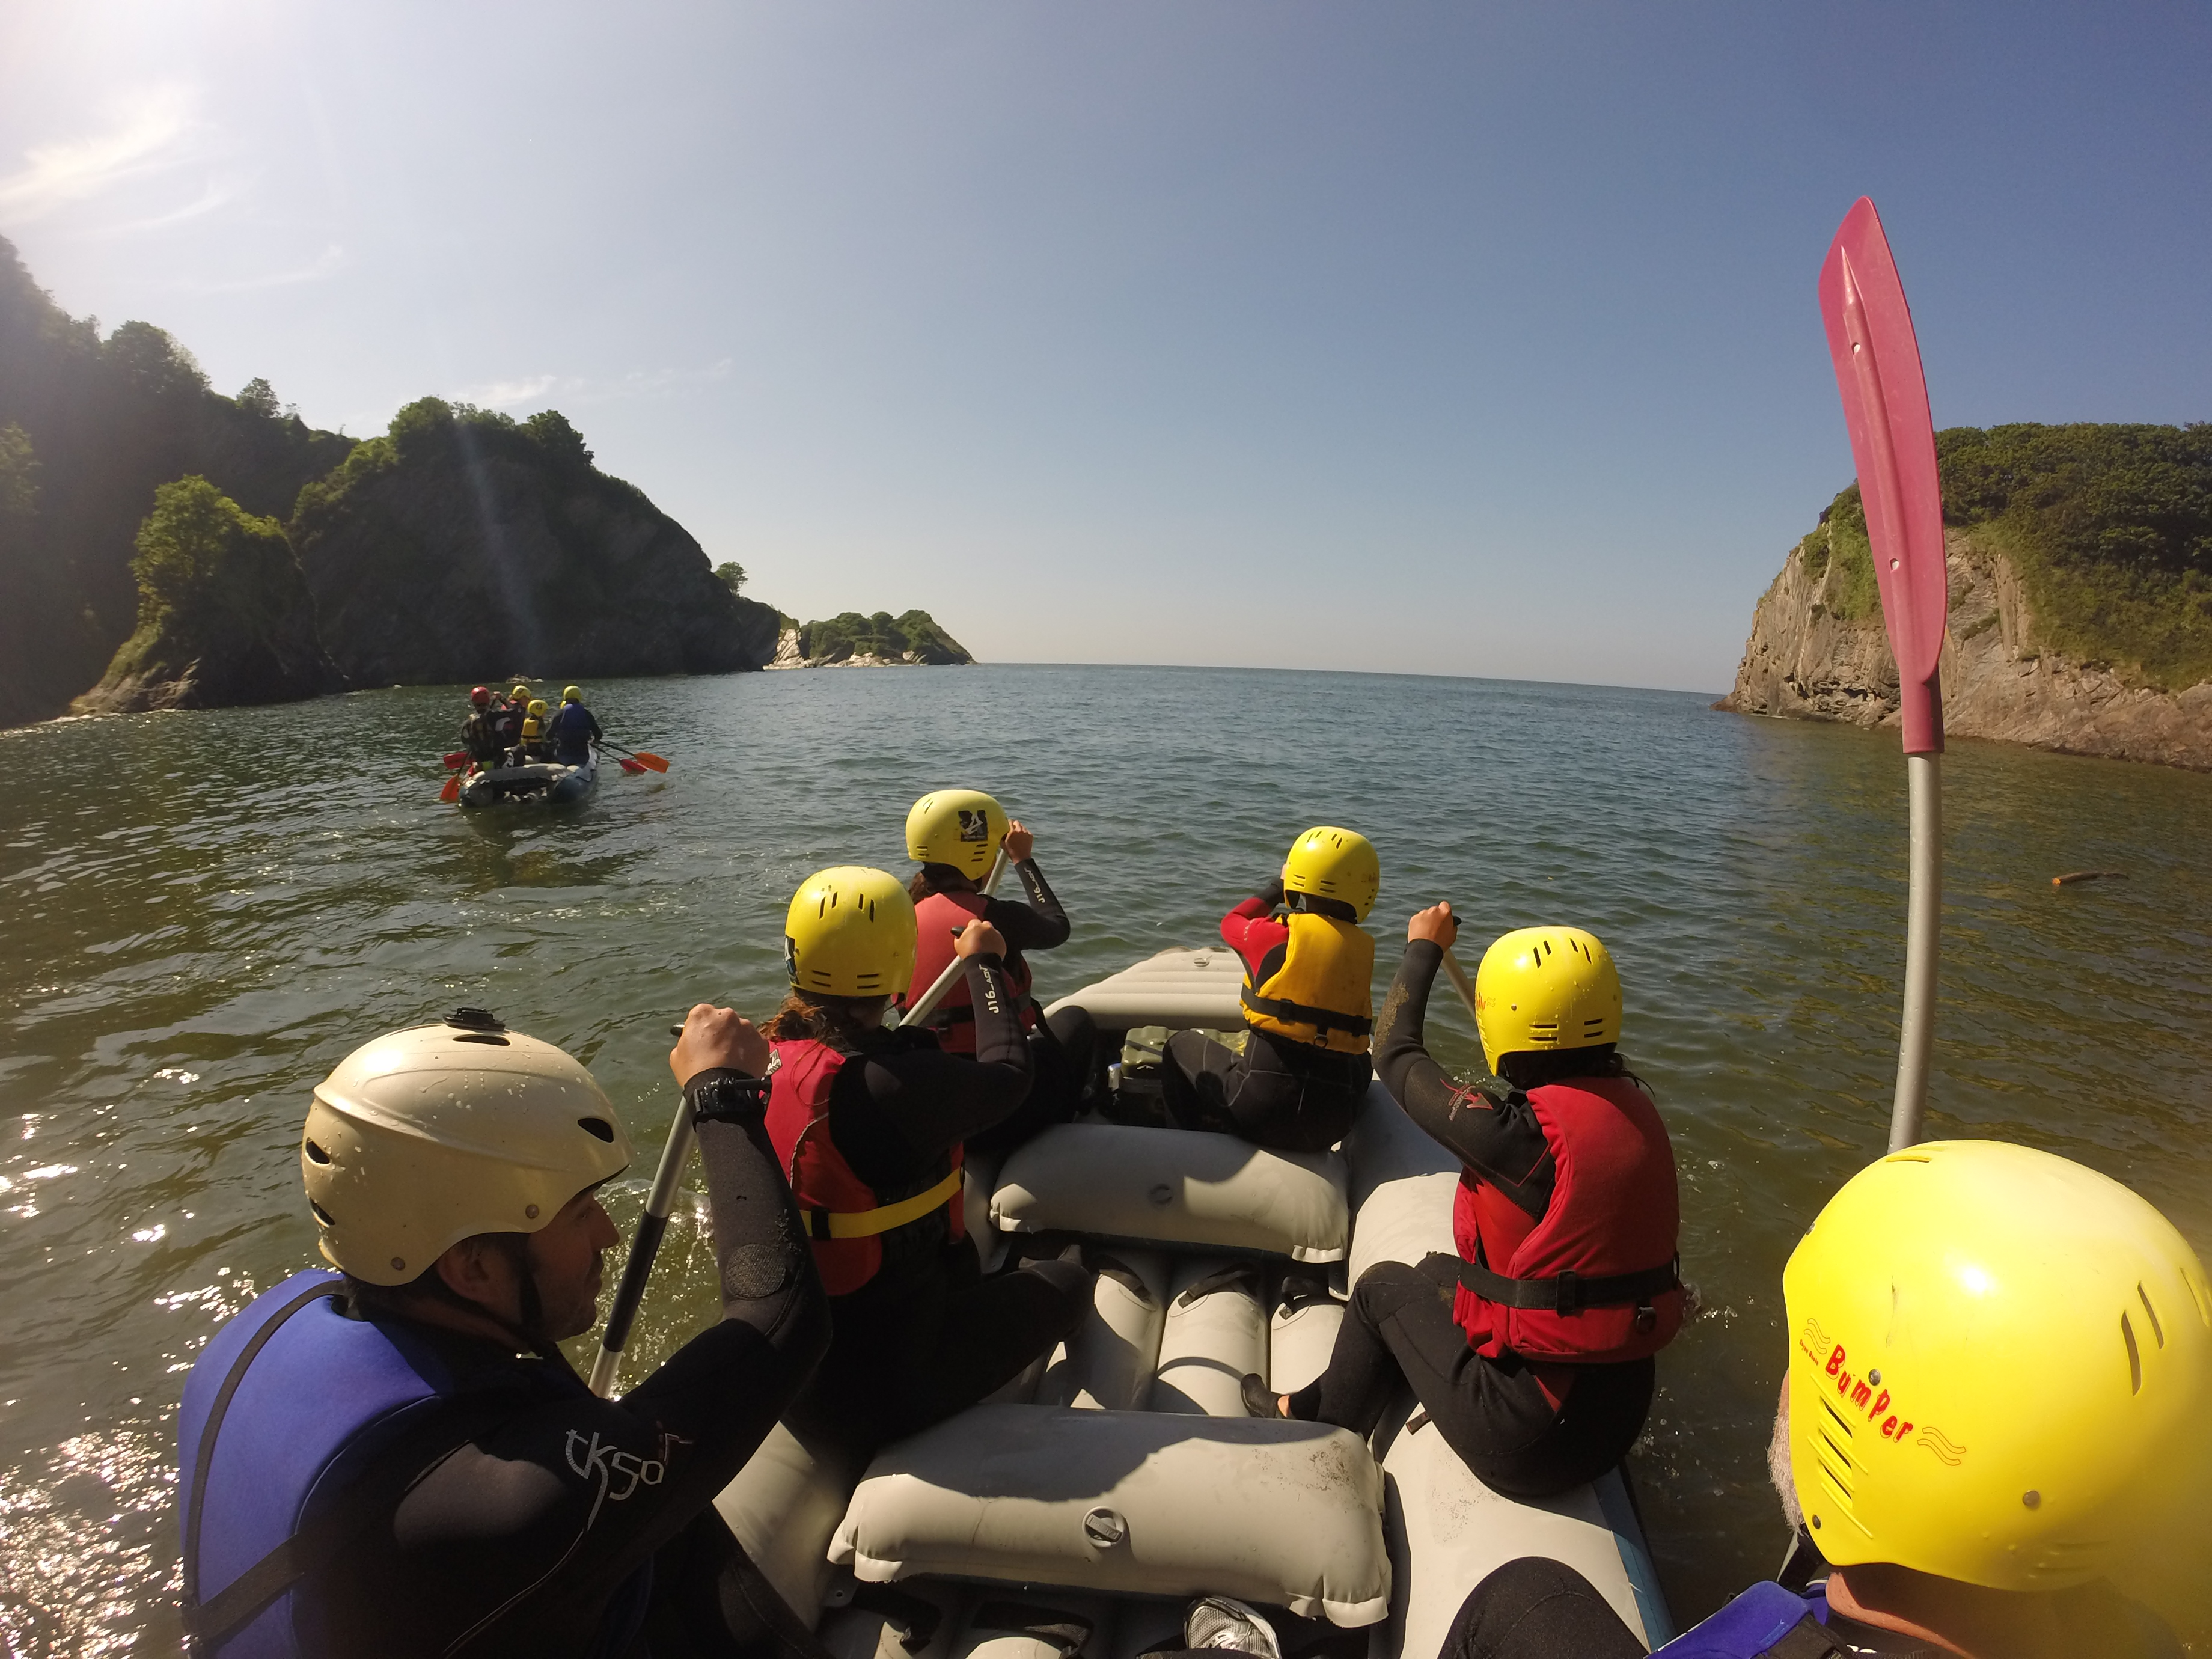 Group raft adventure north devon, family activities